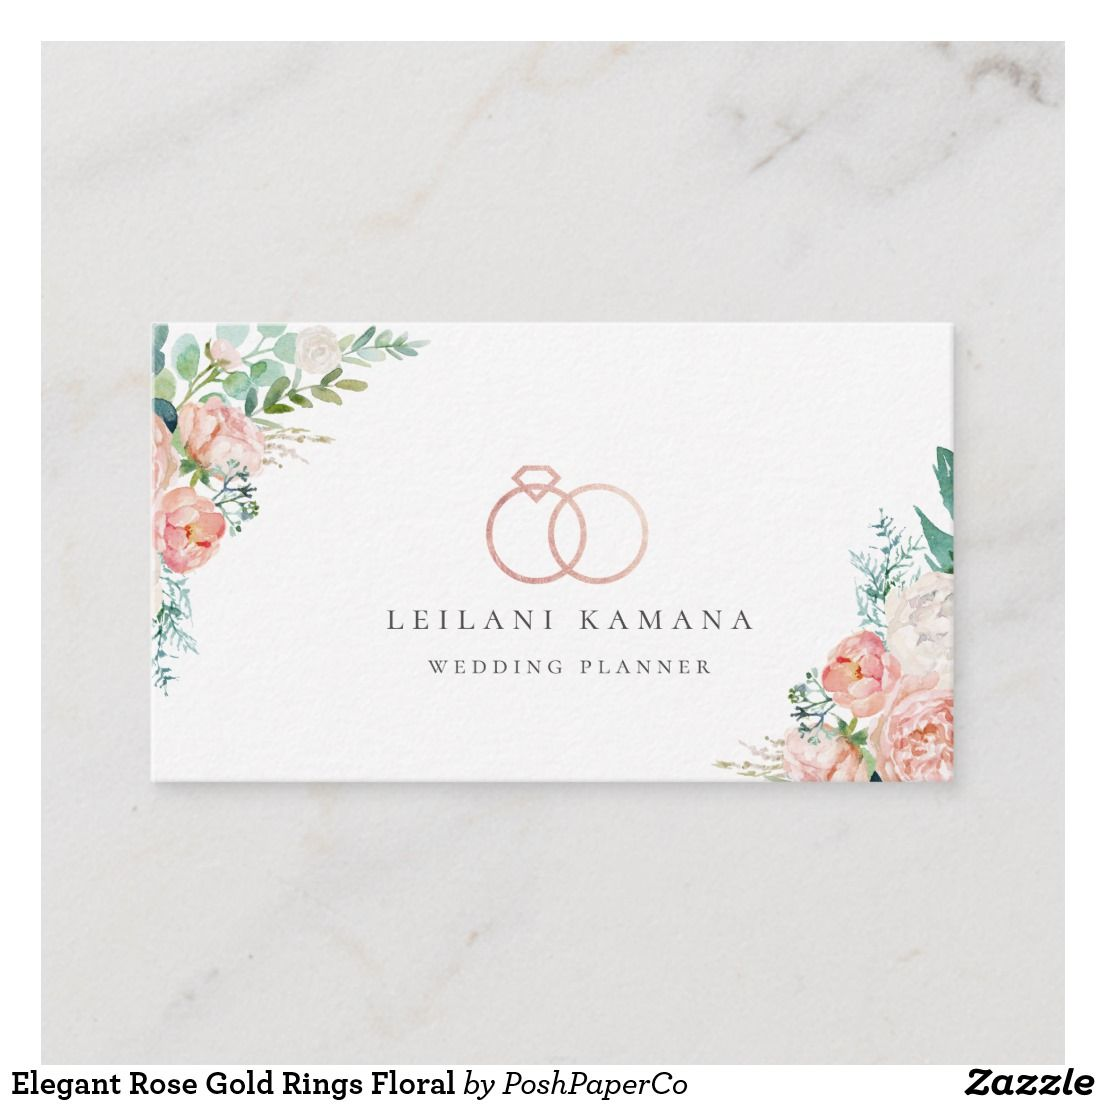 Elegant Rose Gold Rings Floral Business Card Zazzle Com With